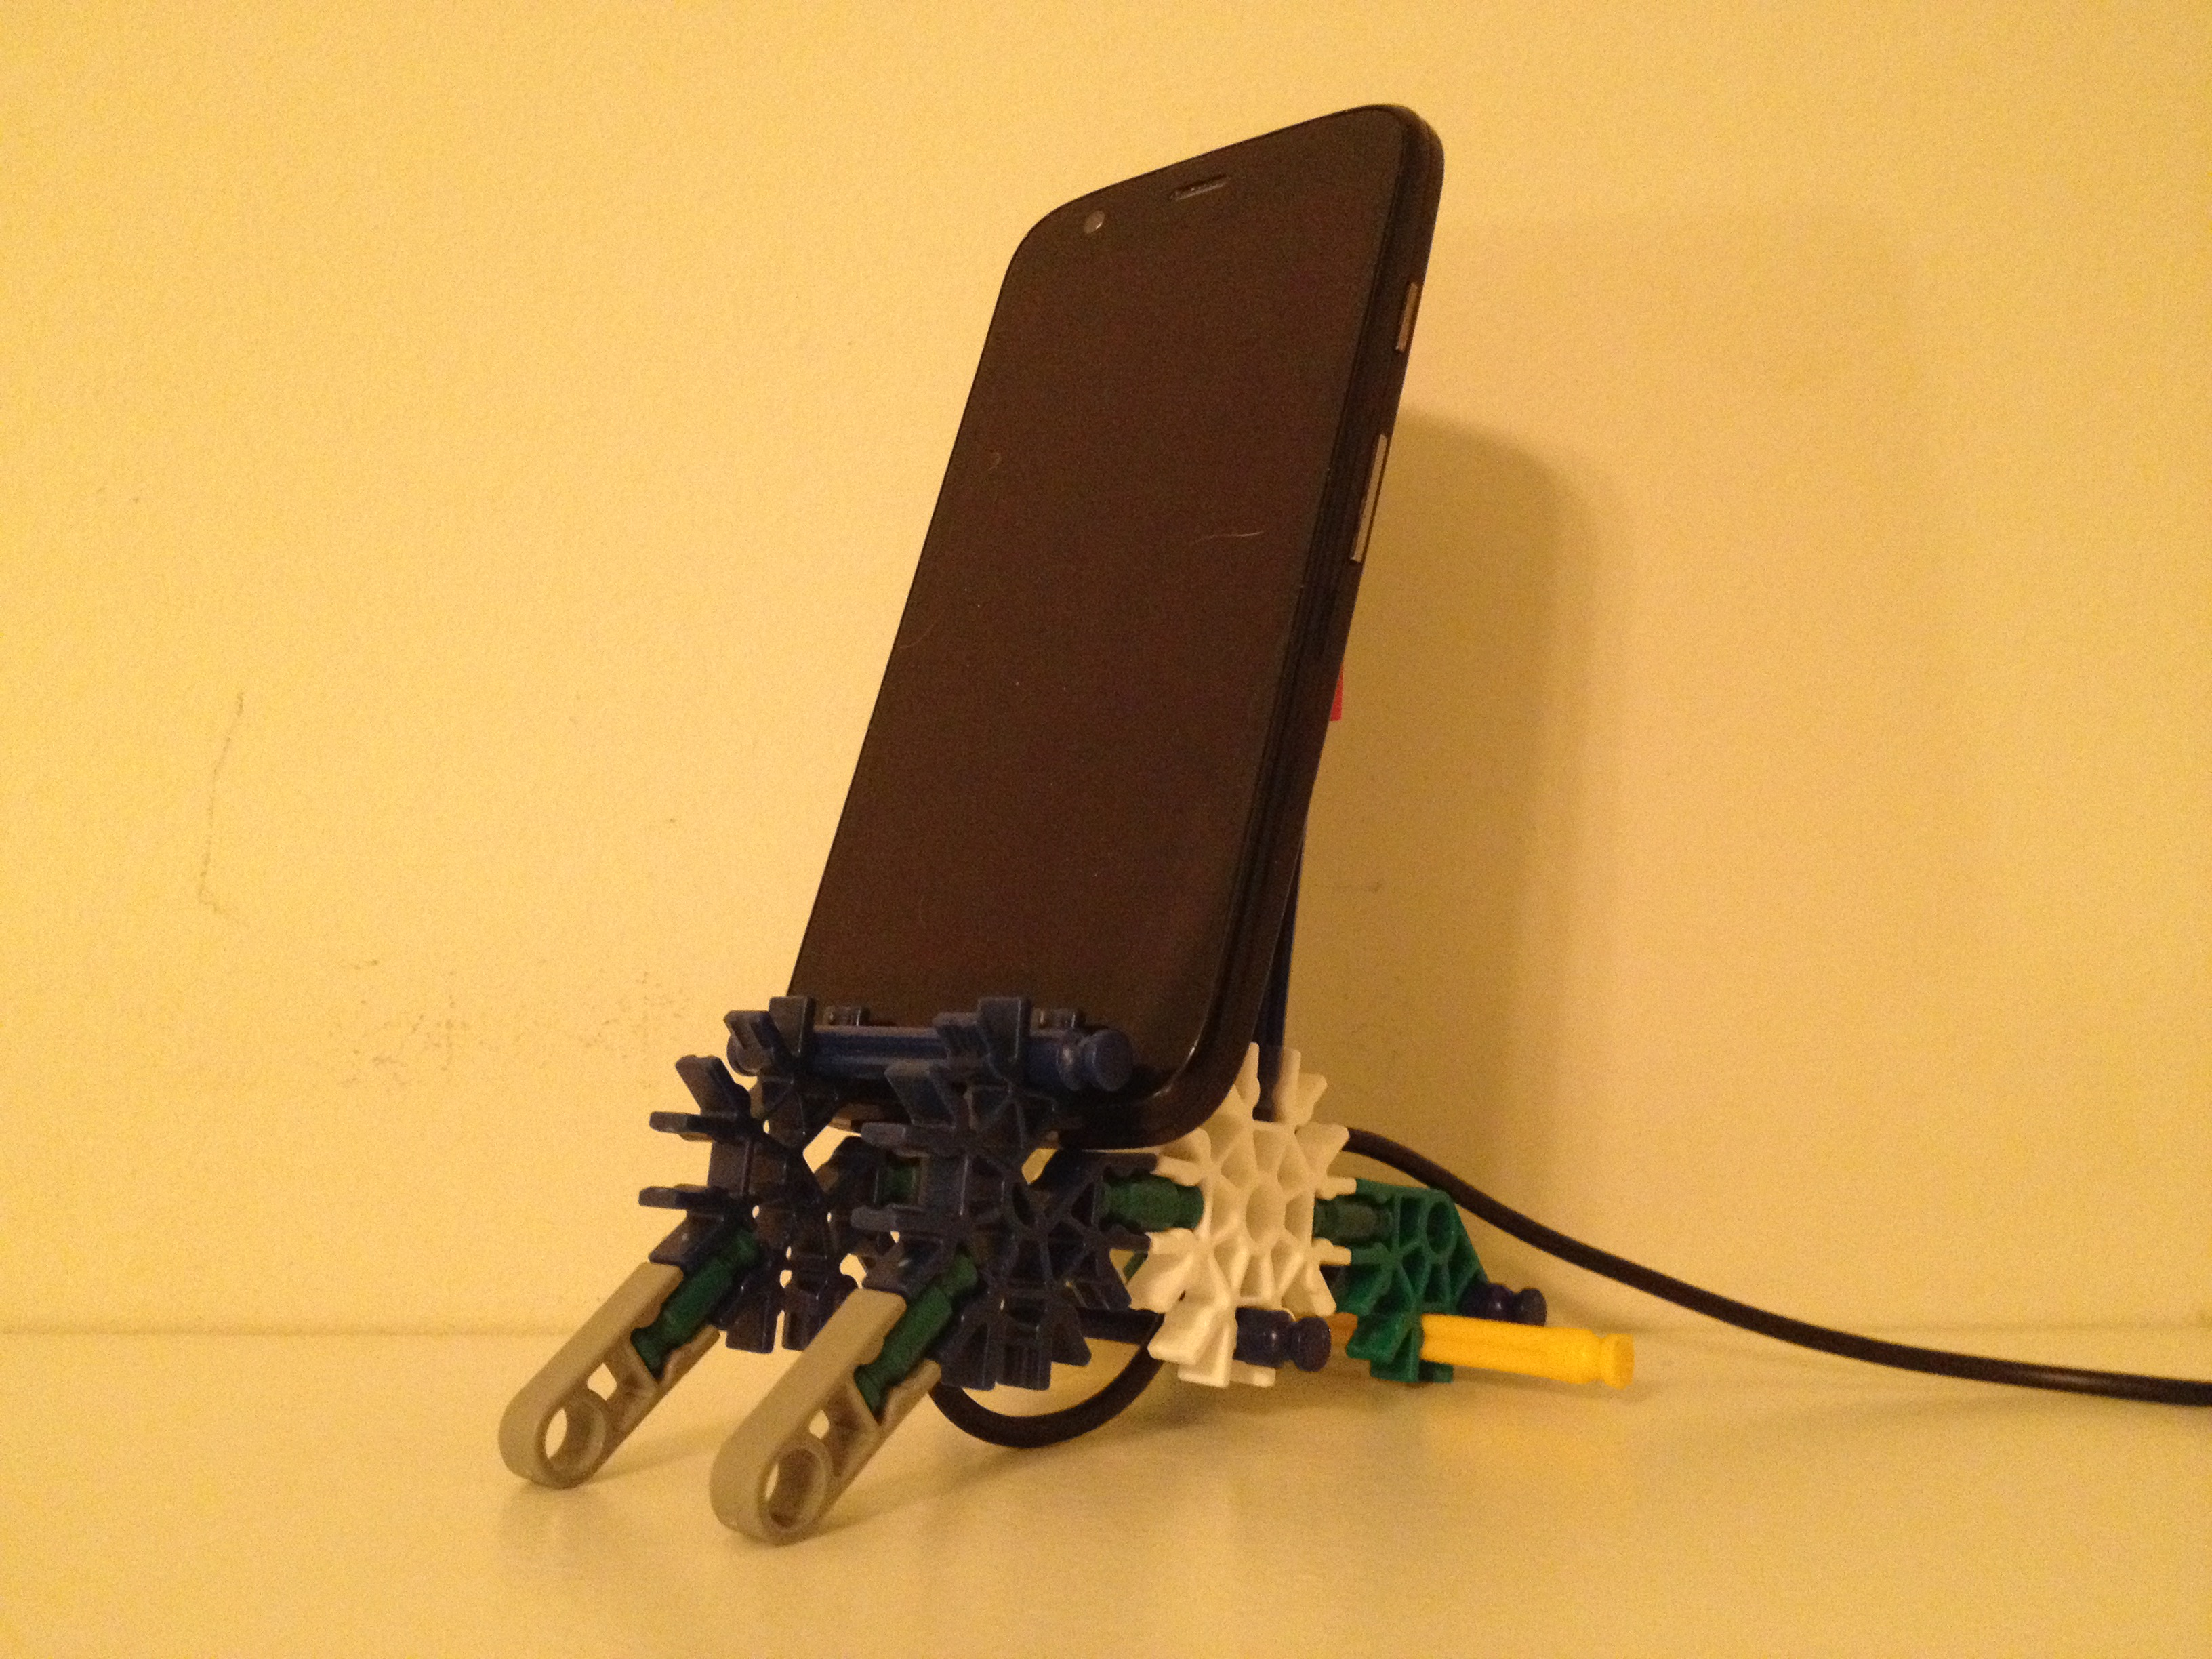 Picture of K'nex Phone Charging Stand